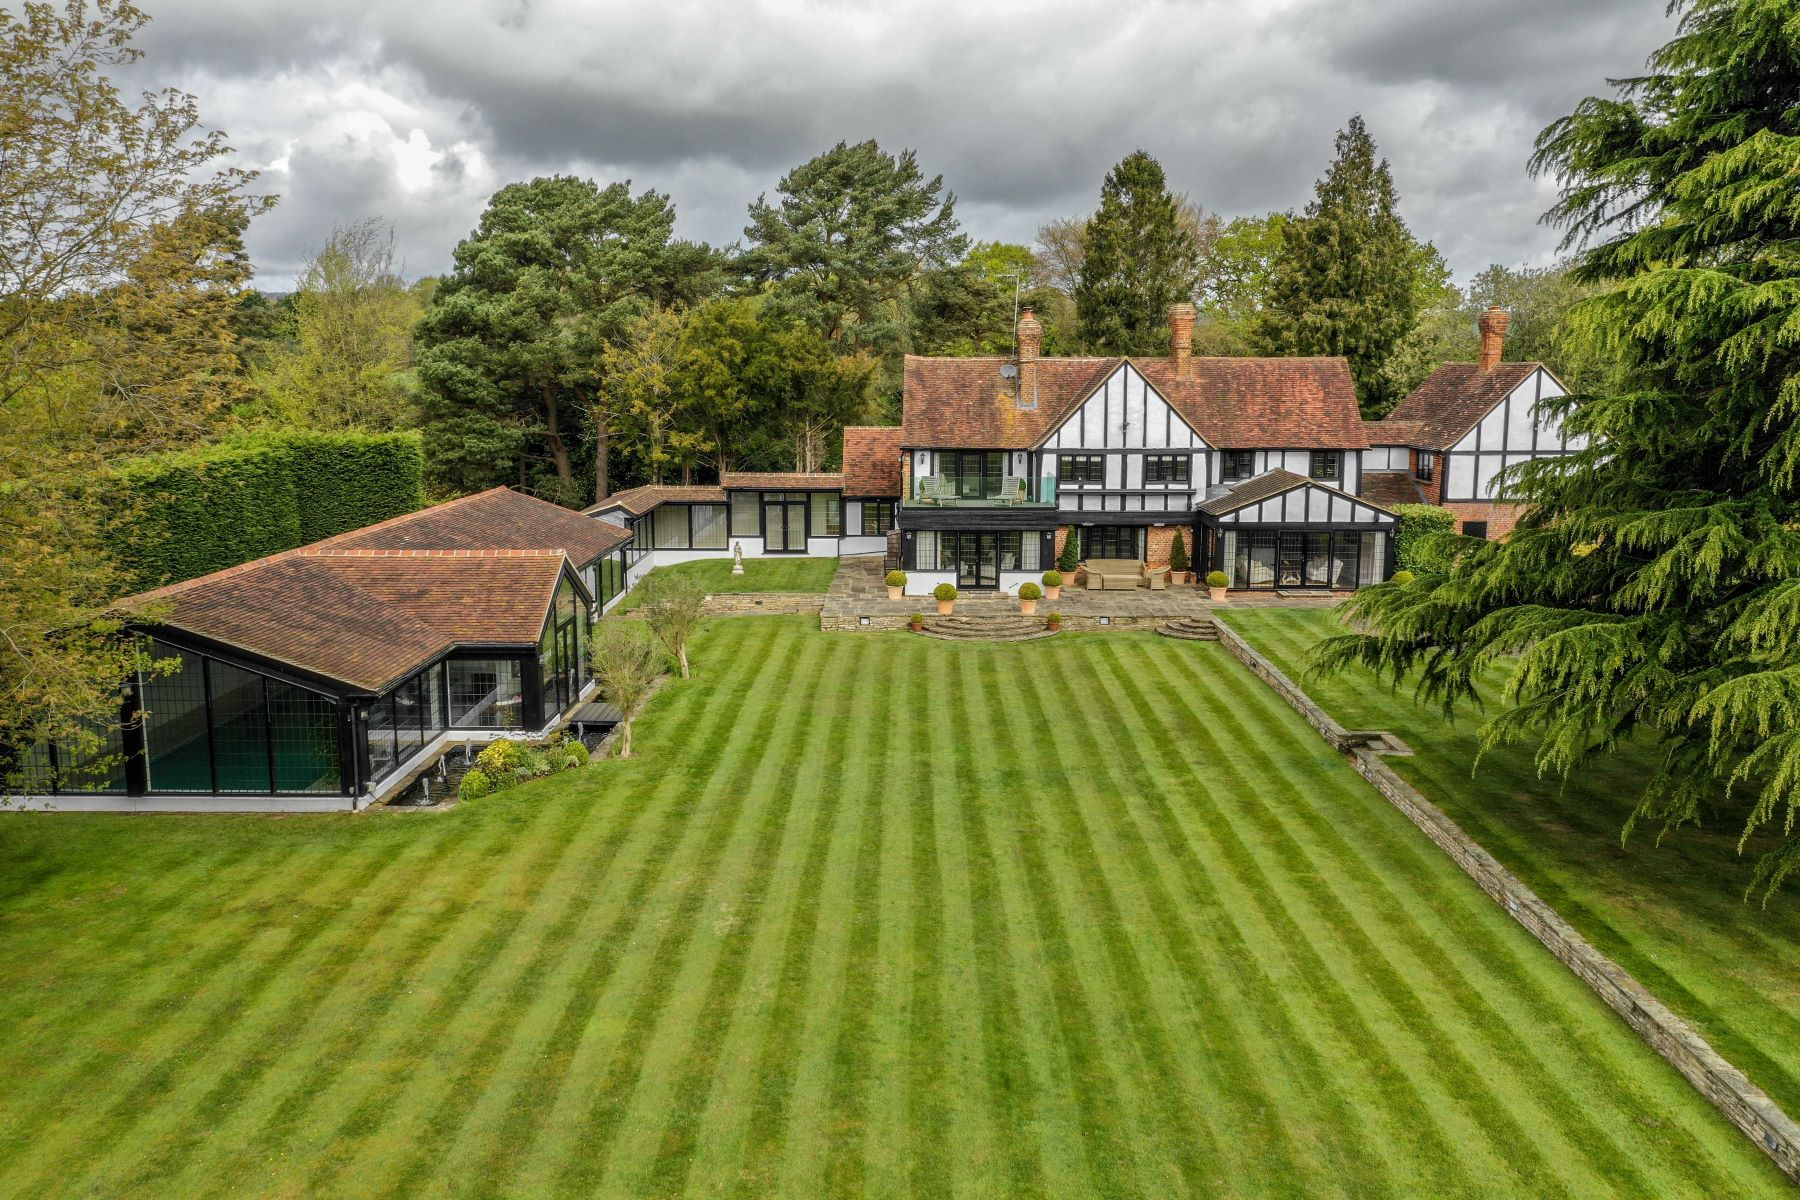 Single Family Homes for Sale at Redwood Westerham Road Oxted, England RH8 0SW United Kingdom